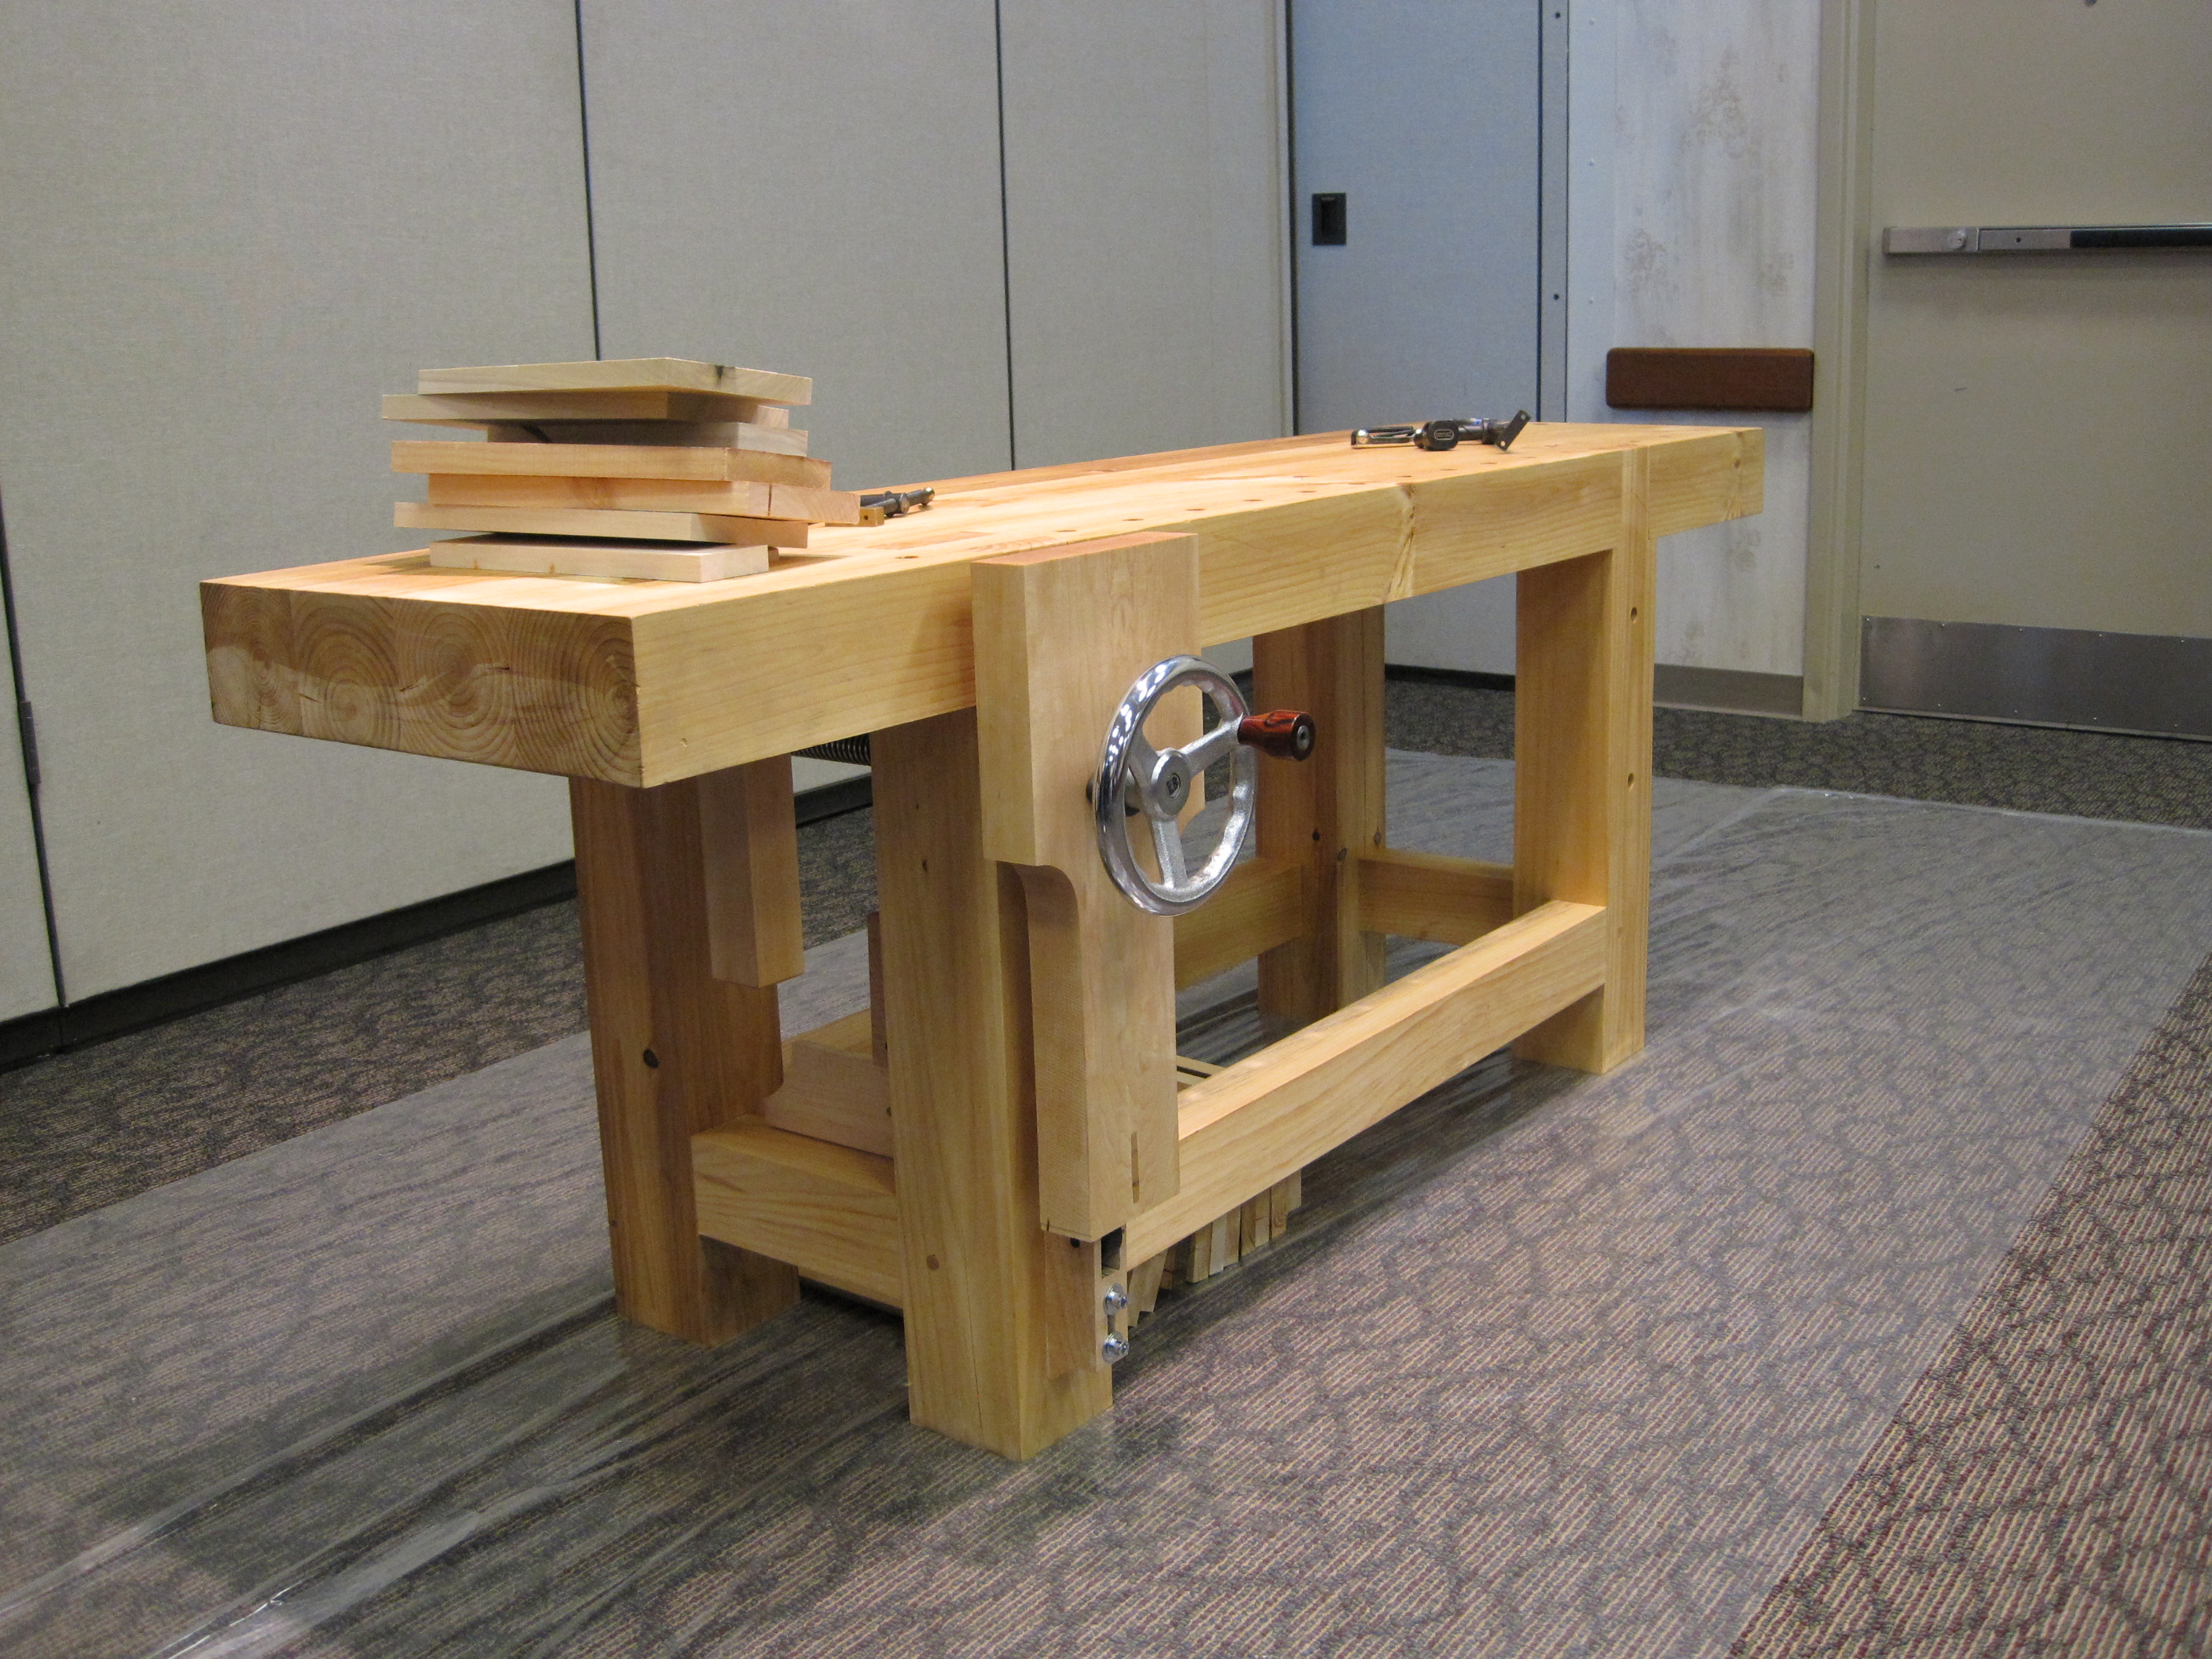 Woodworking Plans Bench Table For Woodworking Pdf Plans